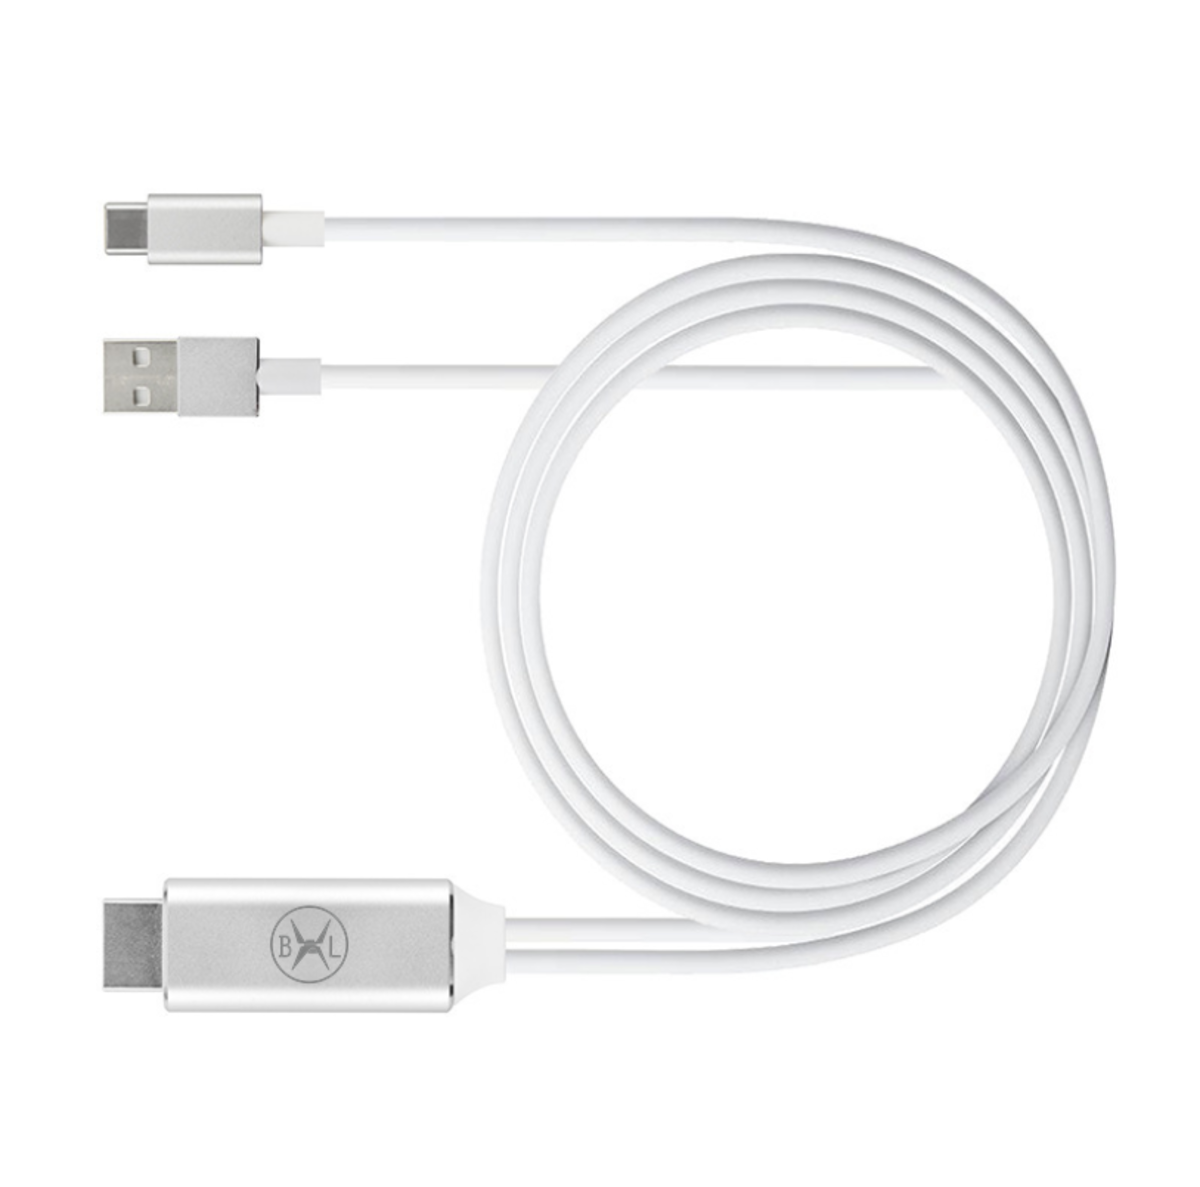 Bennlife USB Type-C to HDMI cable (white)